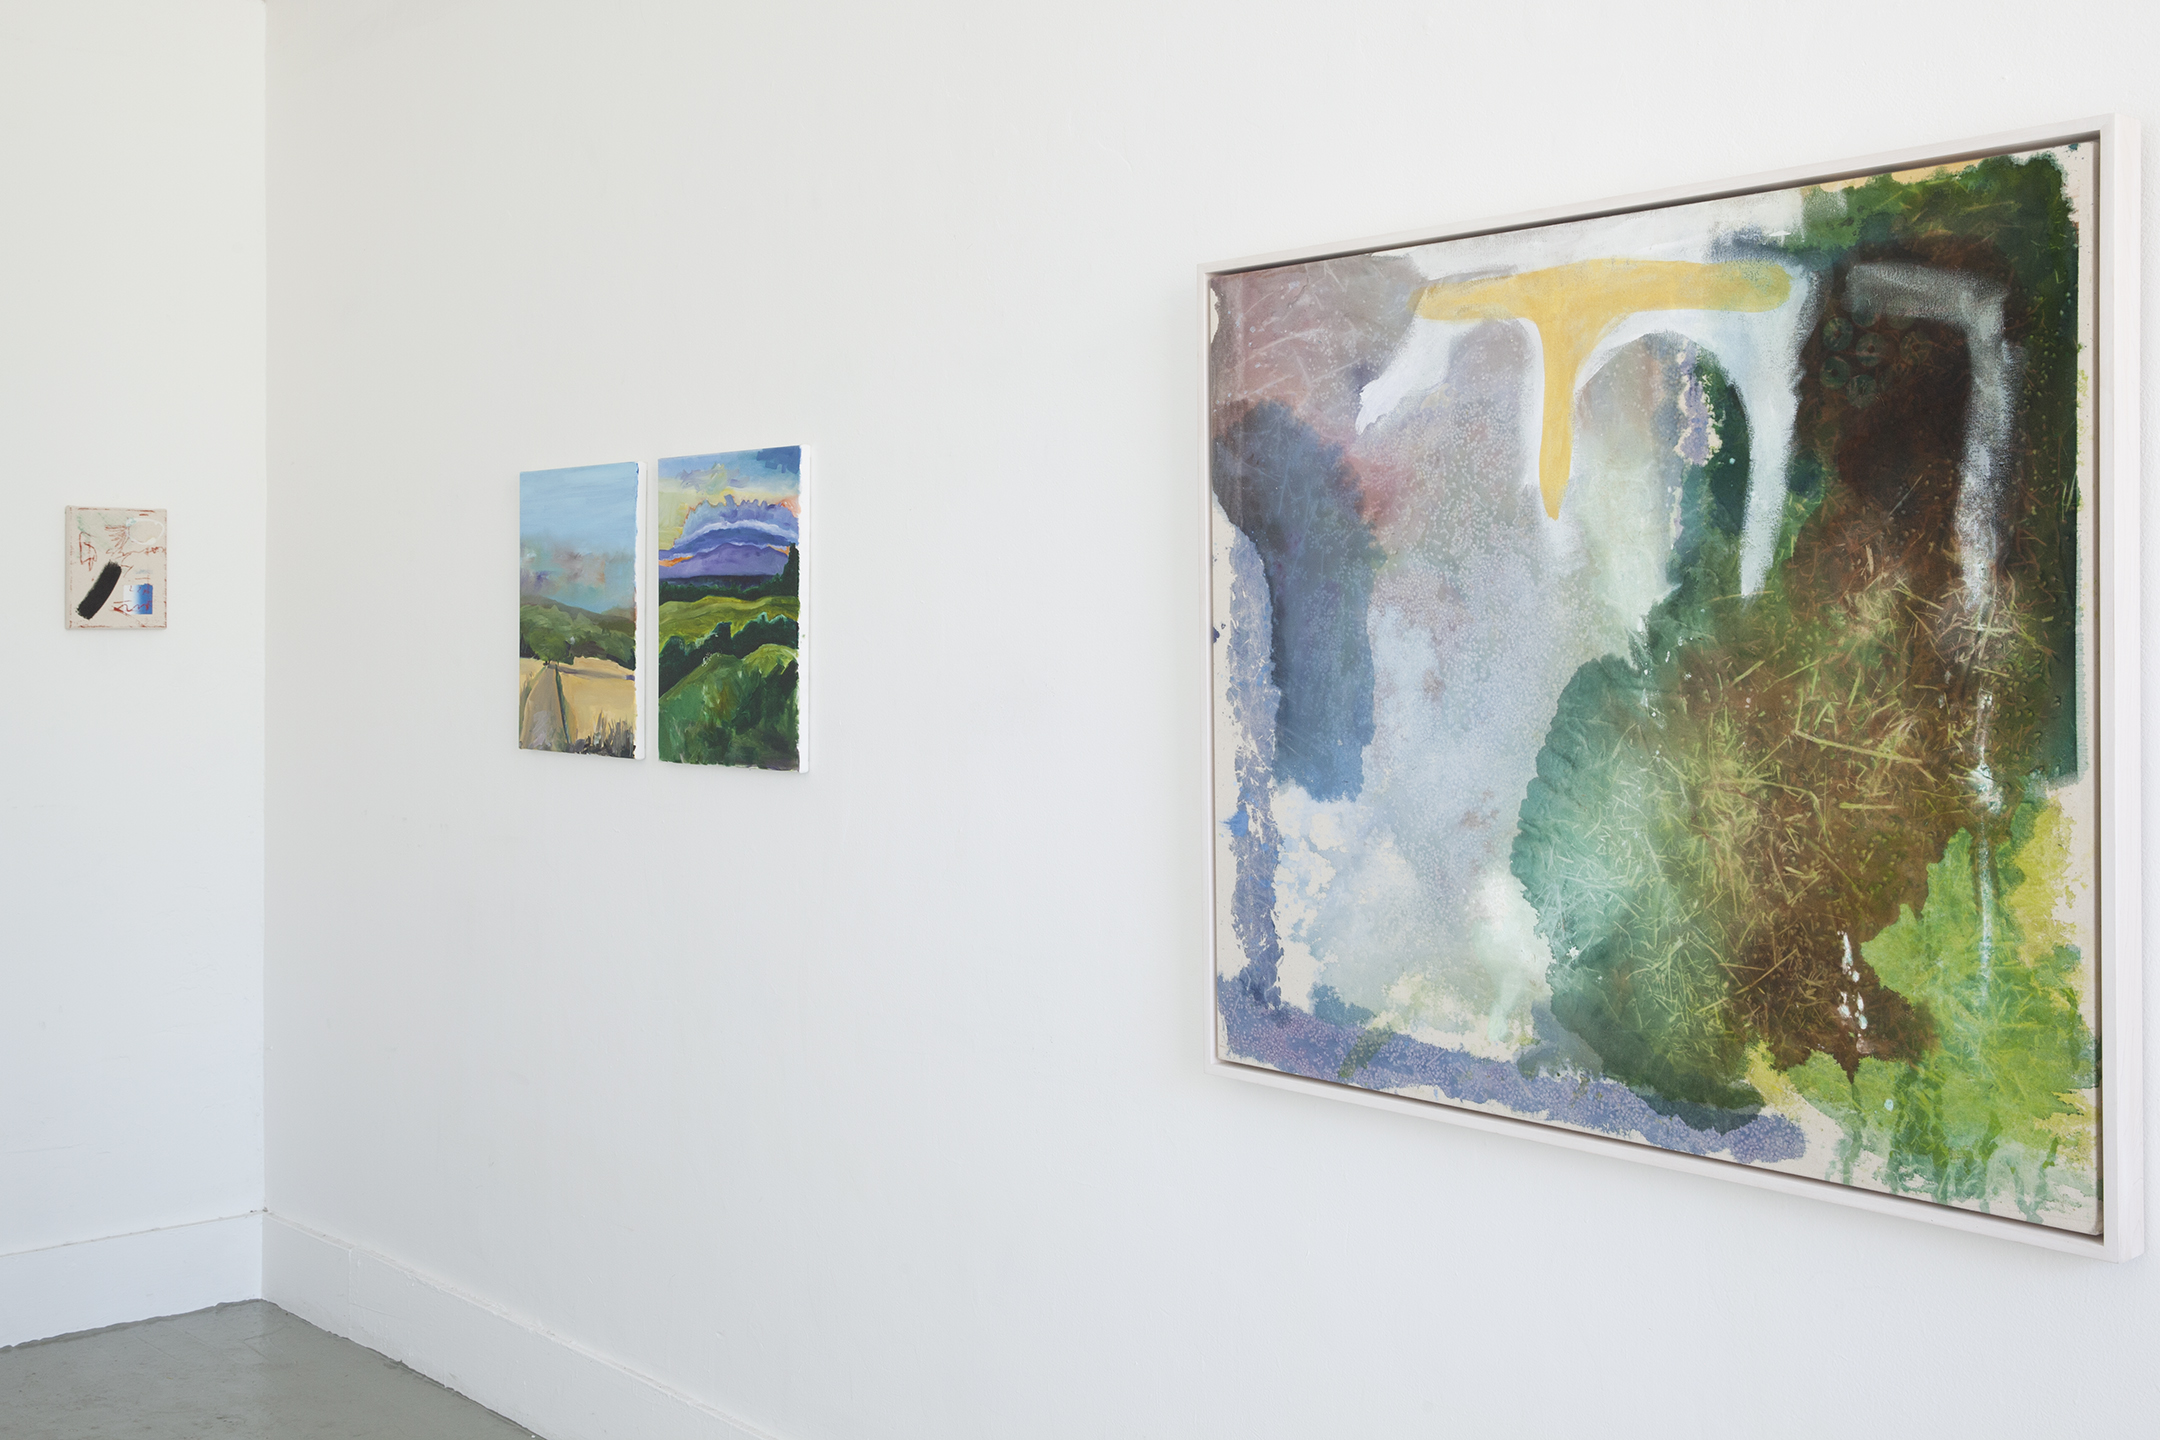 Installation view at Artist Curated Projects, group exhibition, 2018